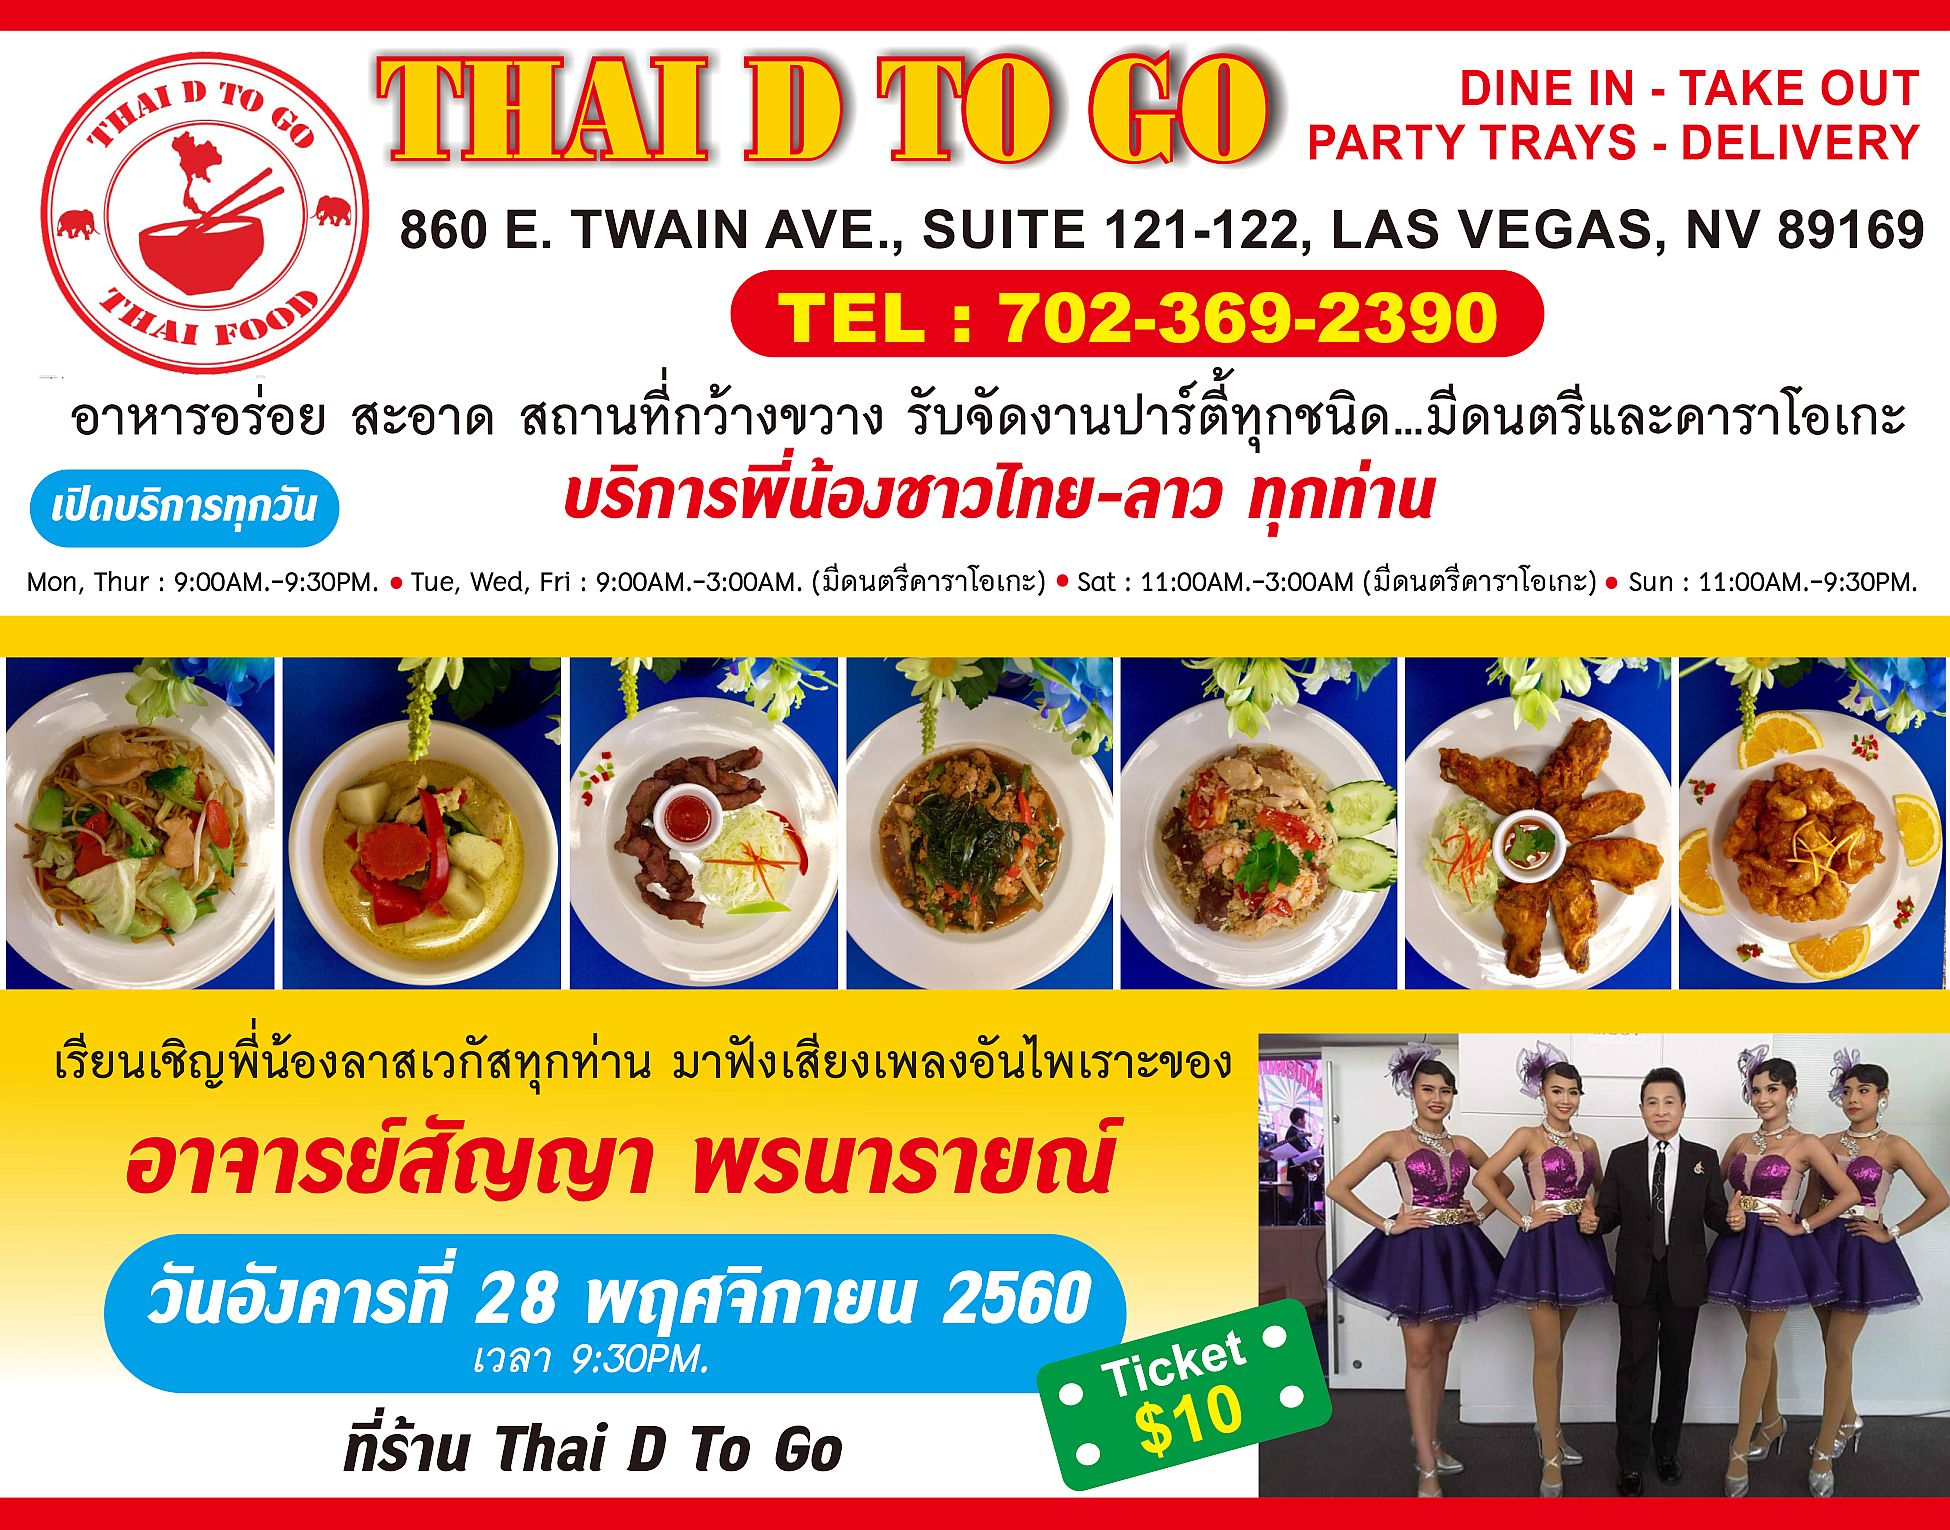 Thai D To Go Concert on November 28, 2017